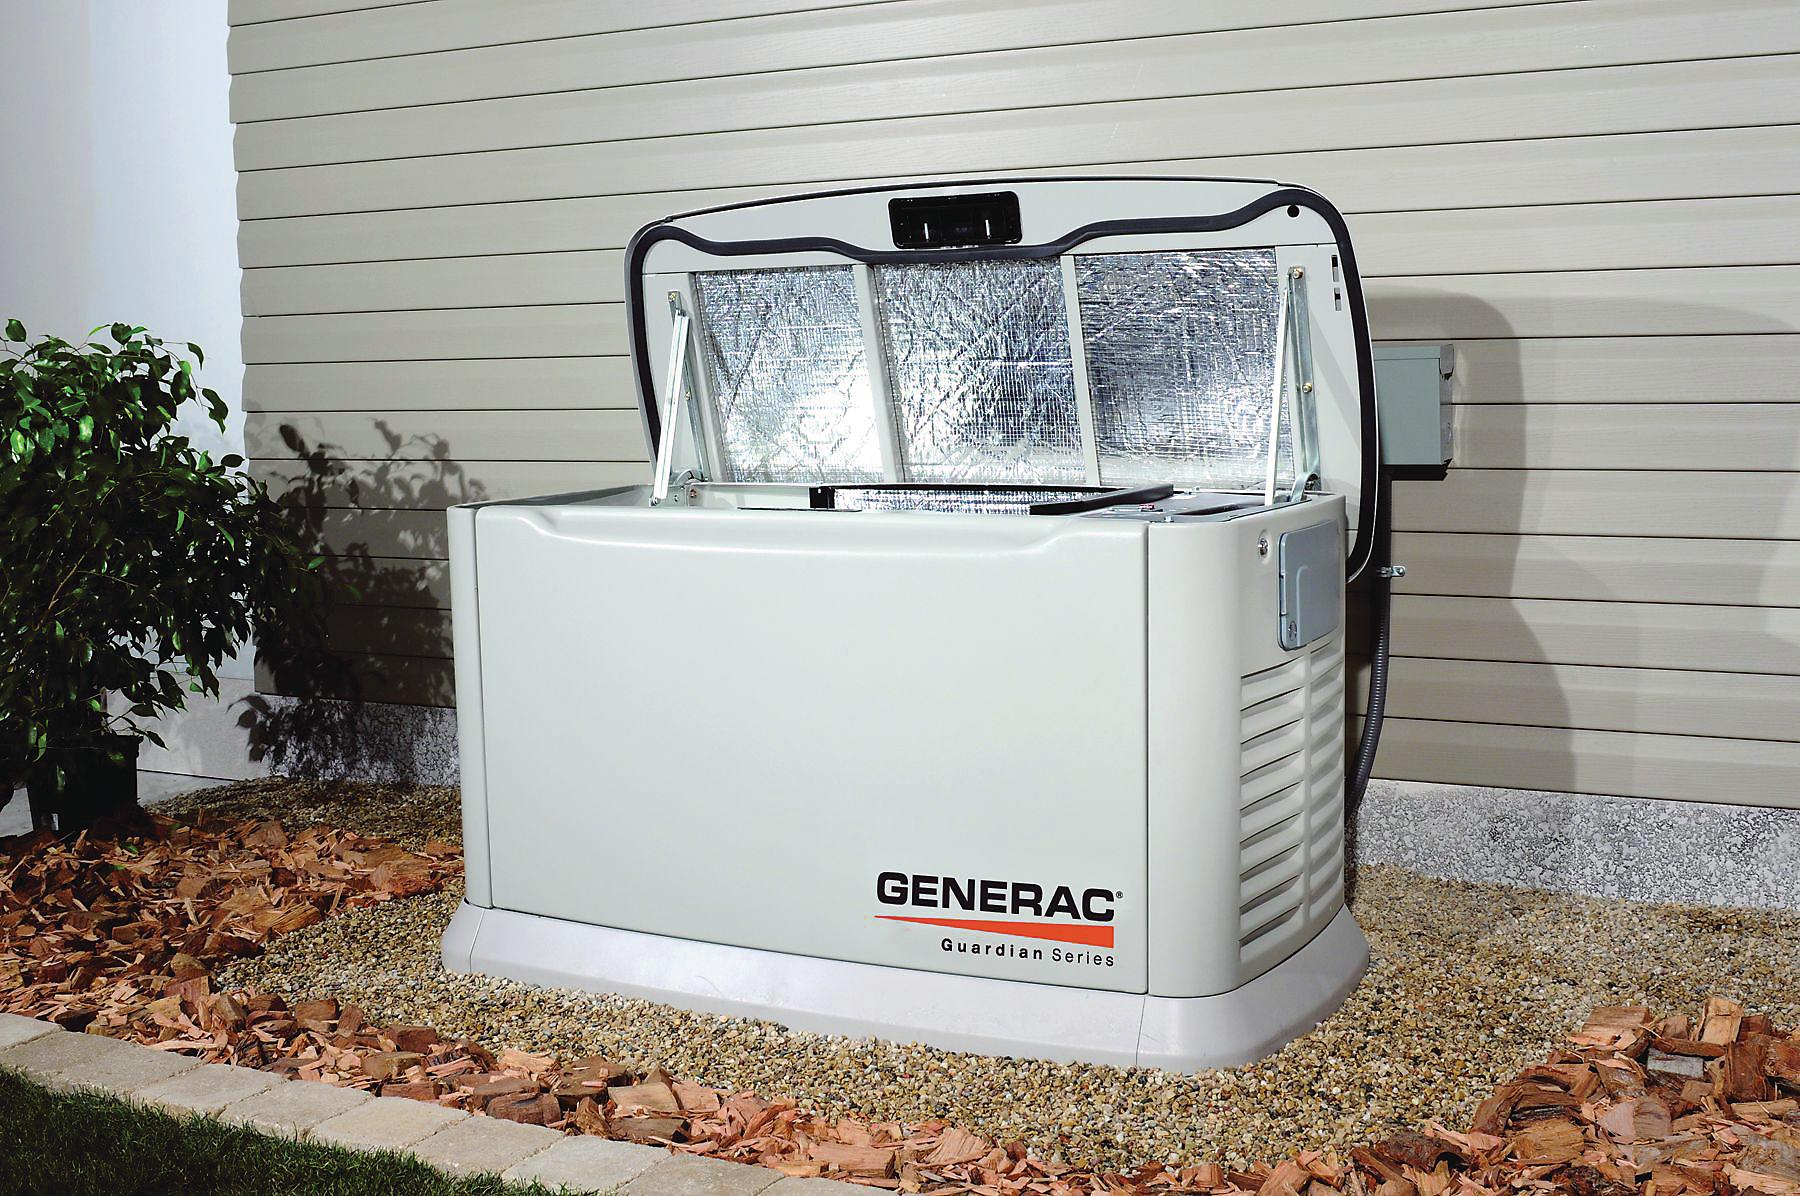 Generac Guardian Series Standby Power Generators